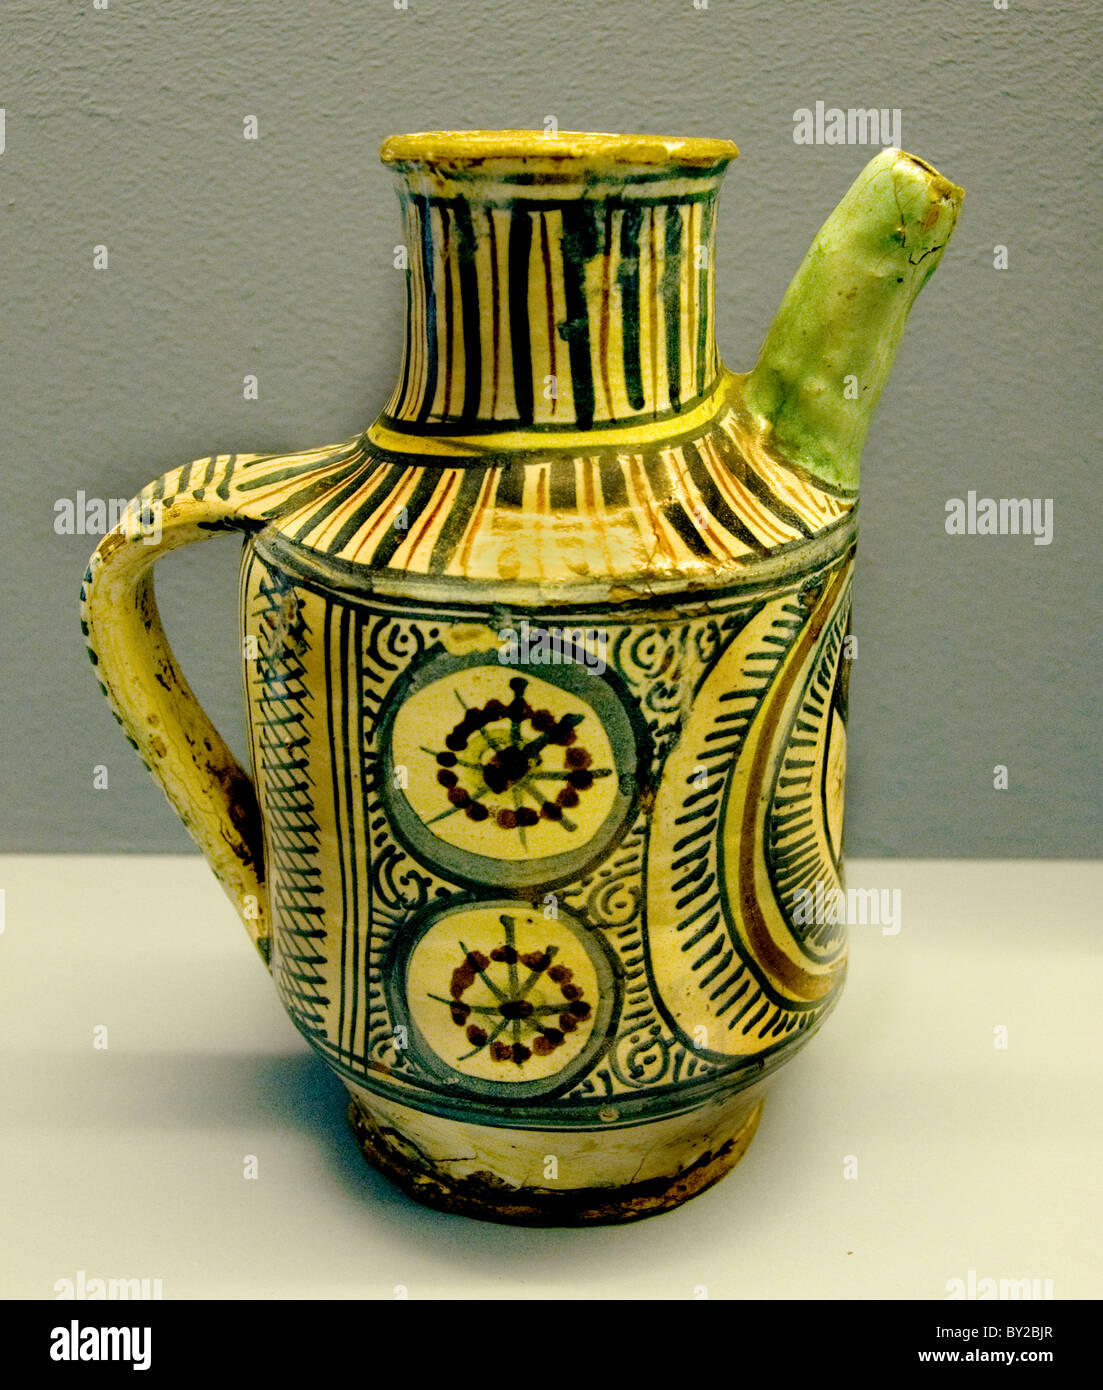 Sirup Jug 1450 Florence Tuscany Italy Italian Majolica ceramic Middle Ages Medieval - Stock Image